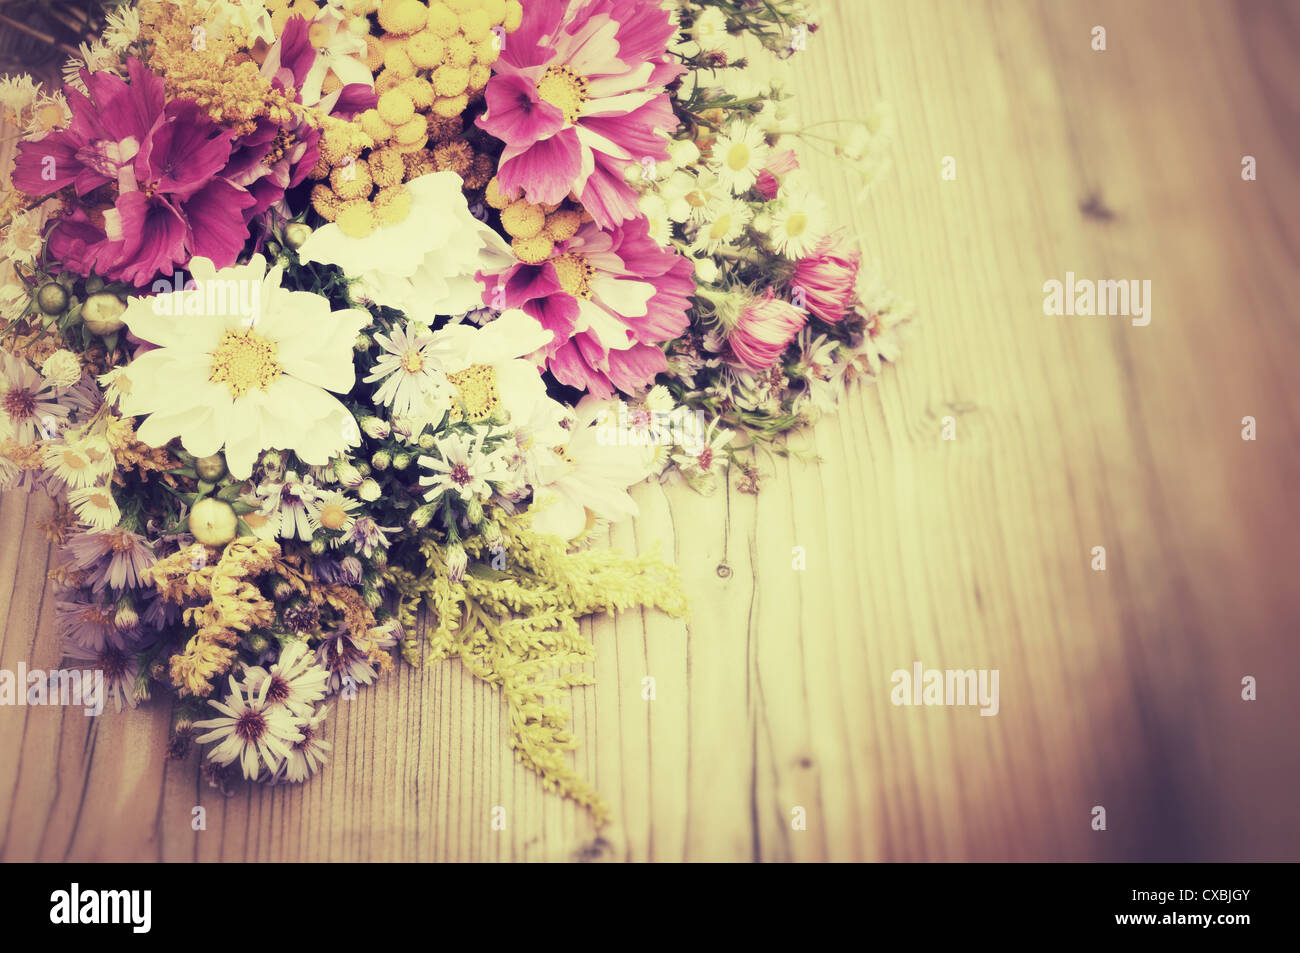 Bouquet of Wild Summer Flowers on Wooden Table - Vintage Look Stock ...